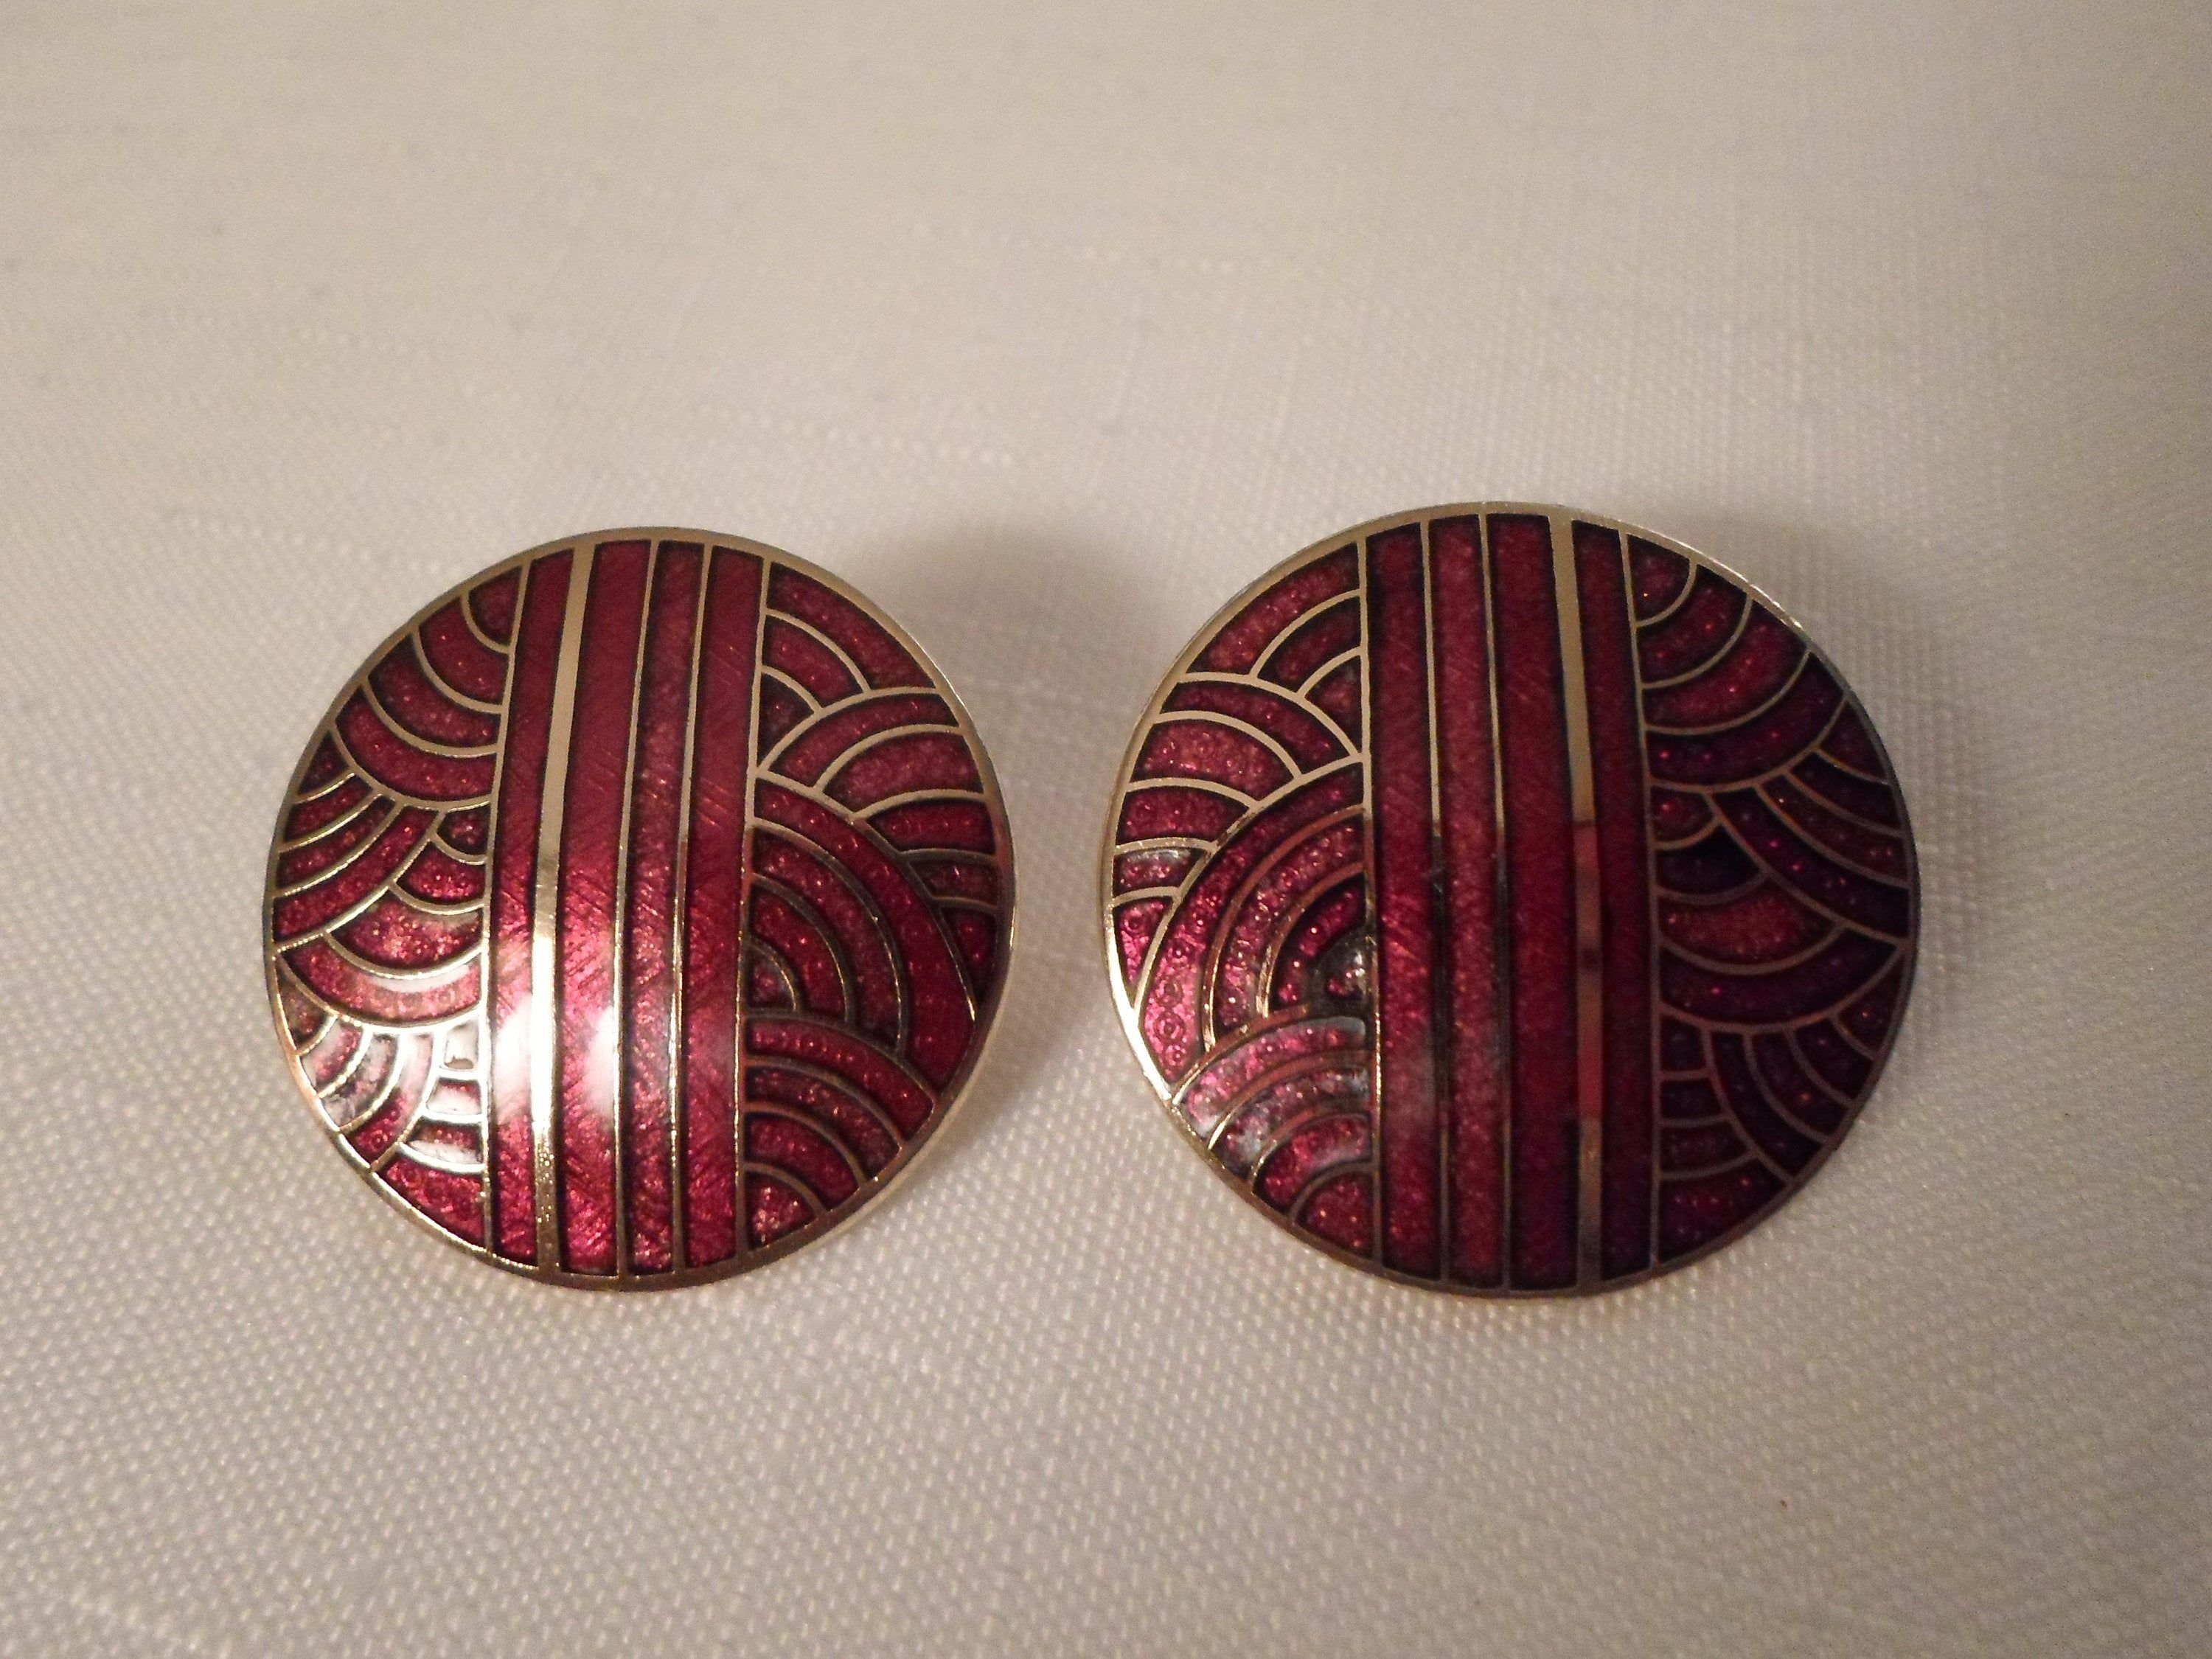 Designer Cloisonne Earrings Signed Siti Red Gold Enamel Art Deco Asian Oriental Japanese Vin Cloisonne Jewelry Cloisonne Earrings Hip Jewelry